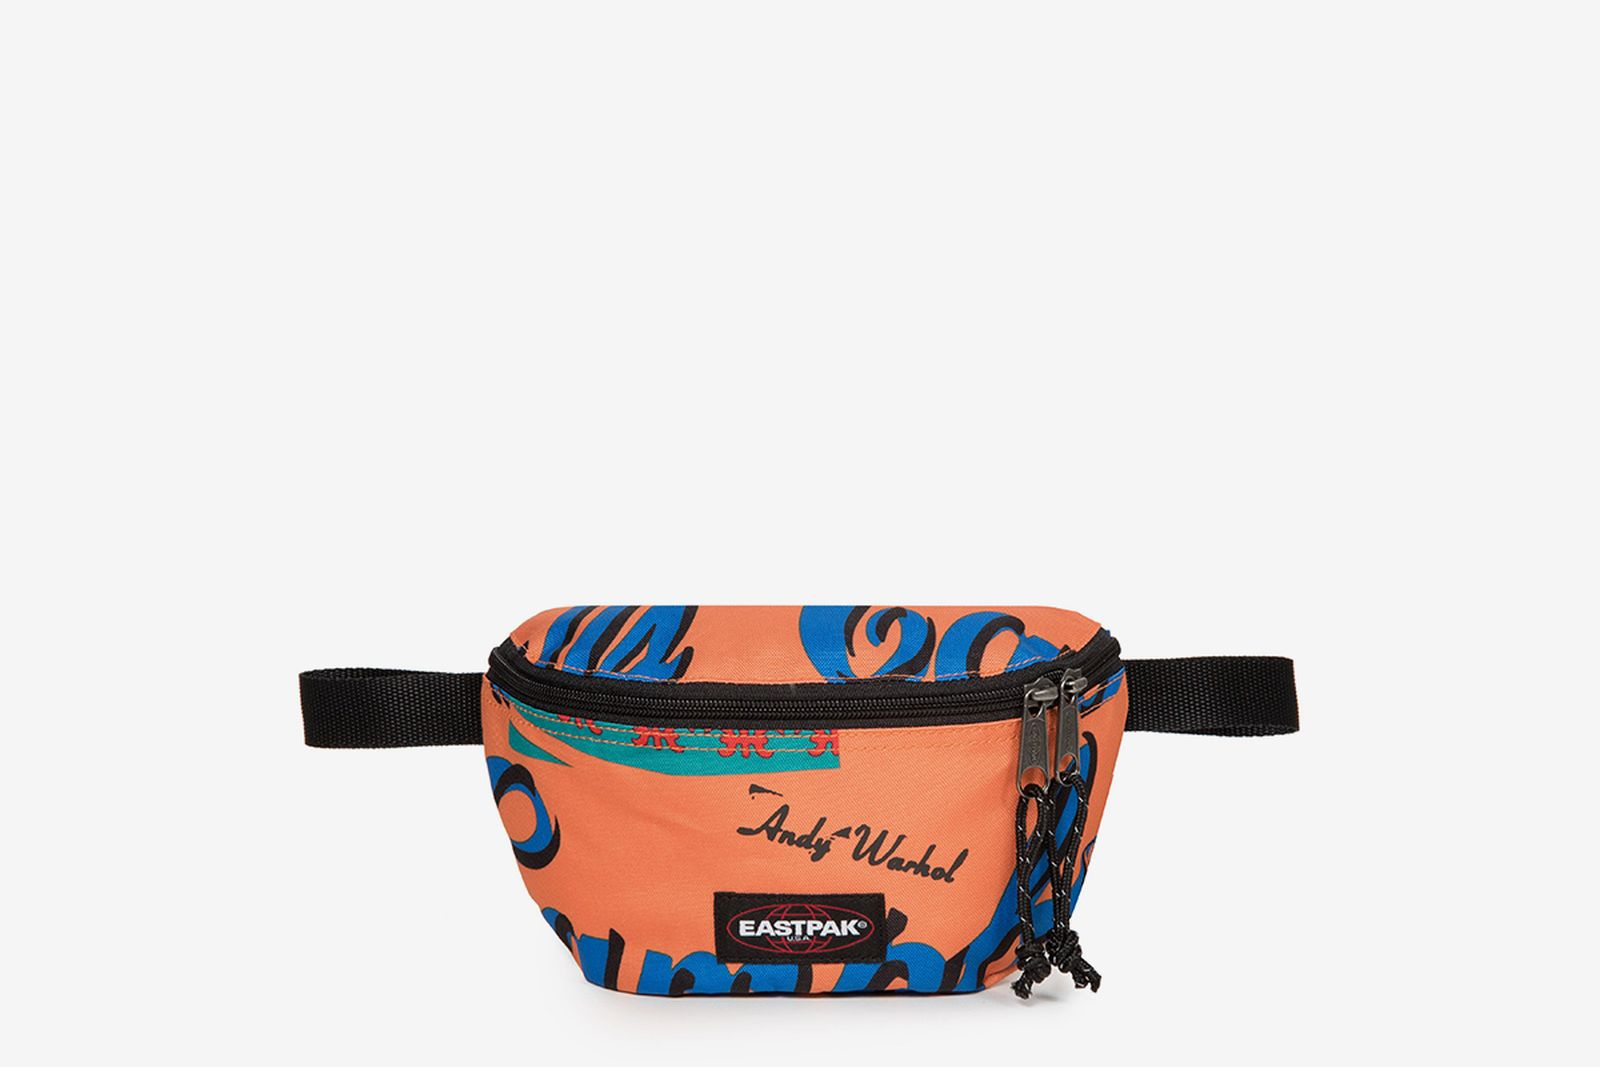 eastpak andy warhol collection